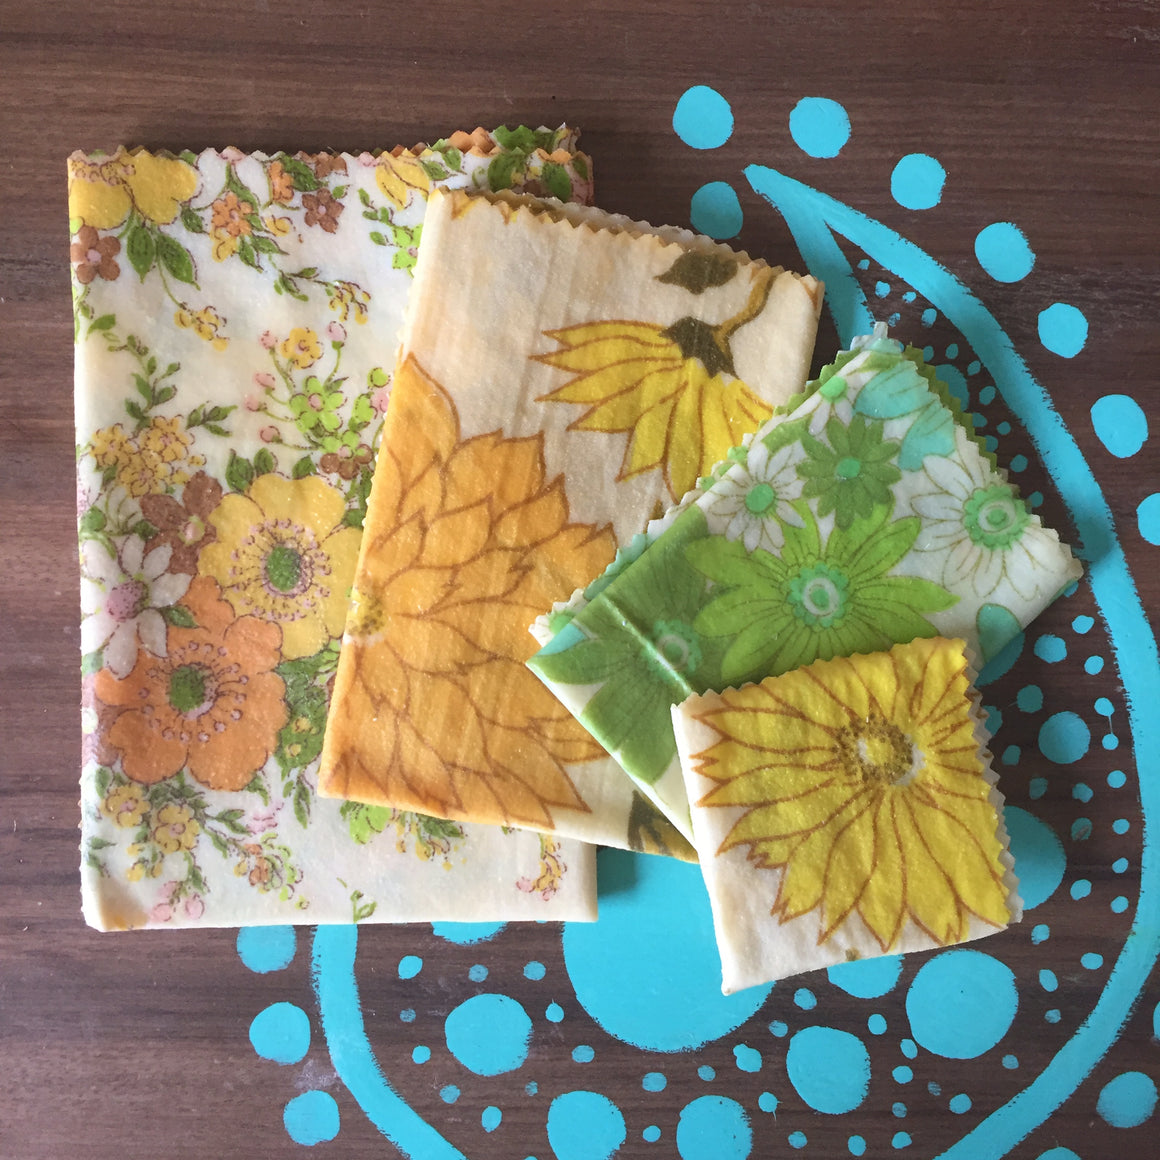 4 PACK - BEESWAX FOOD WRAPS